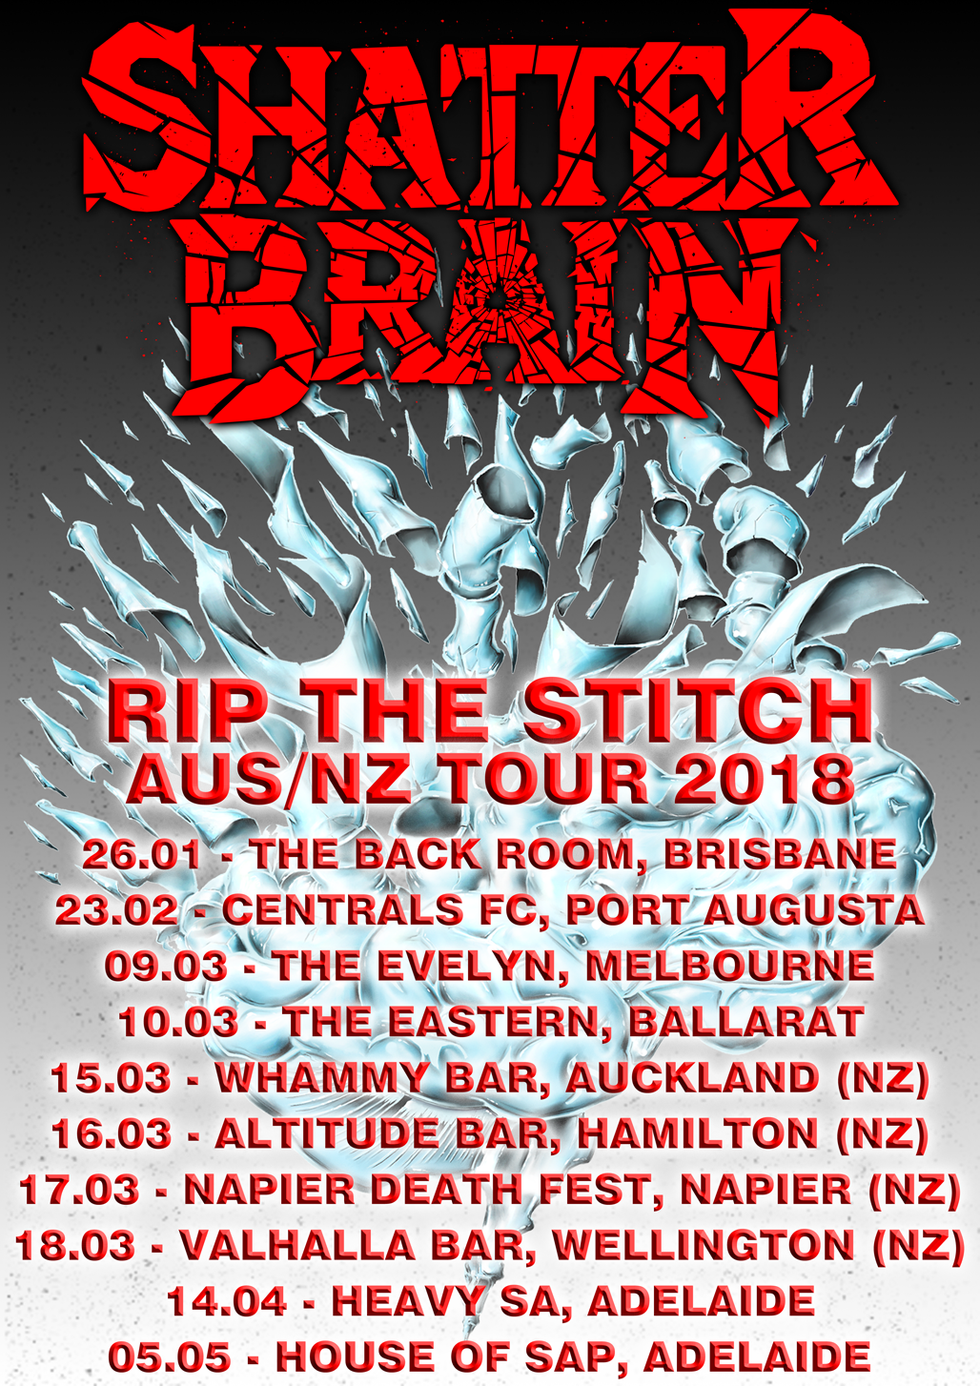 THE SHATTER BRAIN DEMO AND RIP THE STITCH VIDEO RELEASED